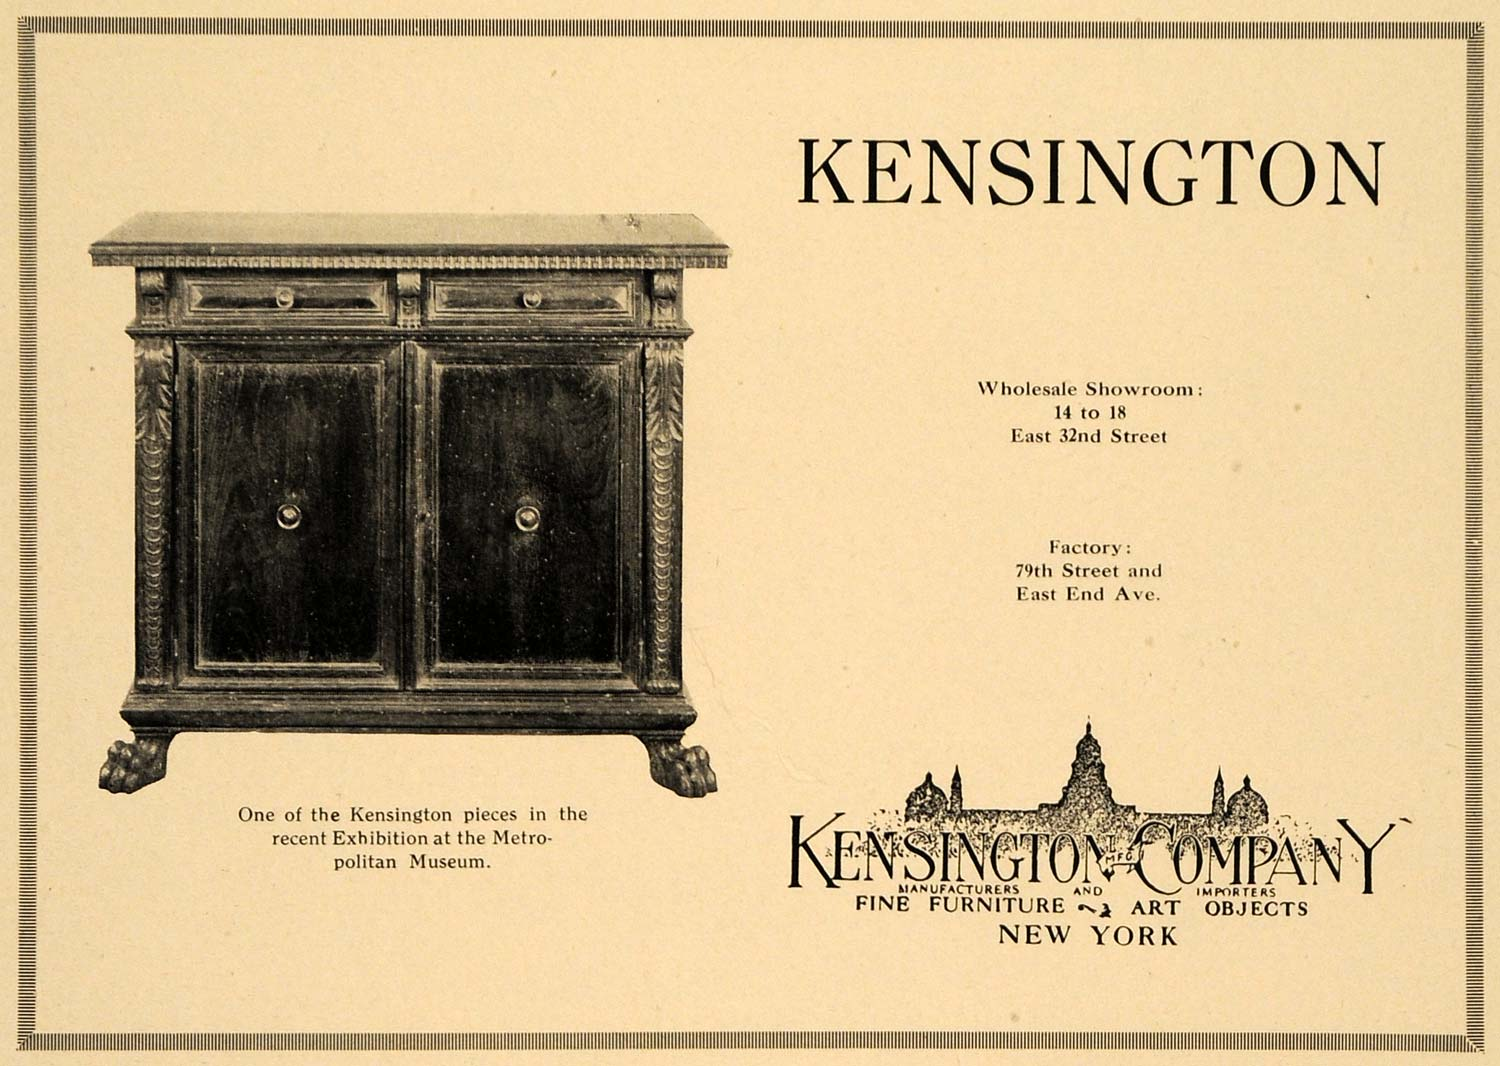 1921 Ad Kensington Co. Furniture Art Objects Cabinet - ORIGINAL ADVERTISING GF4